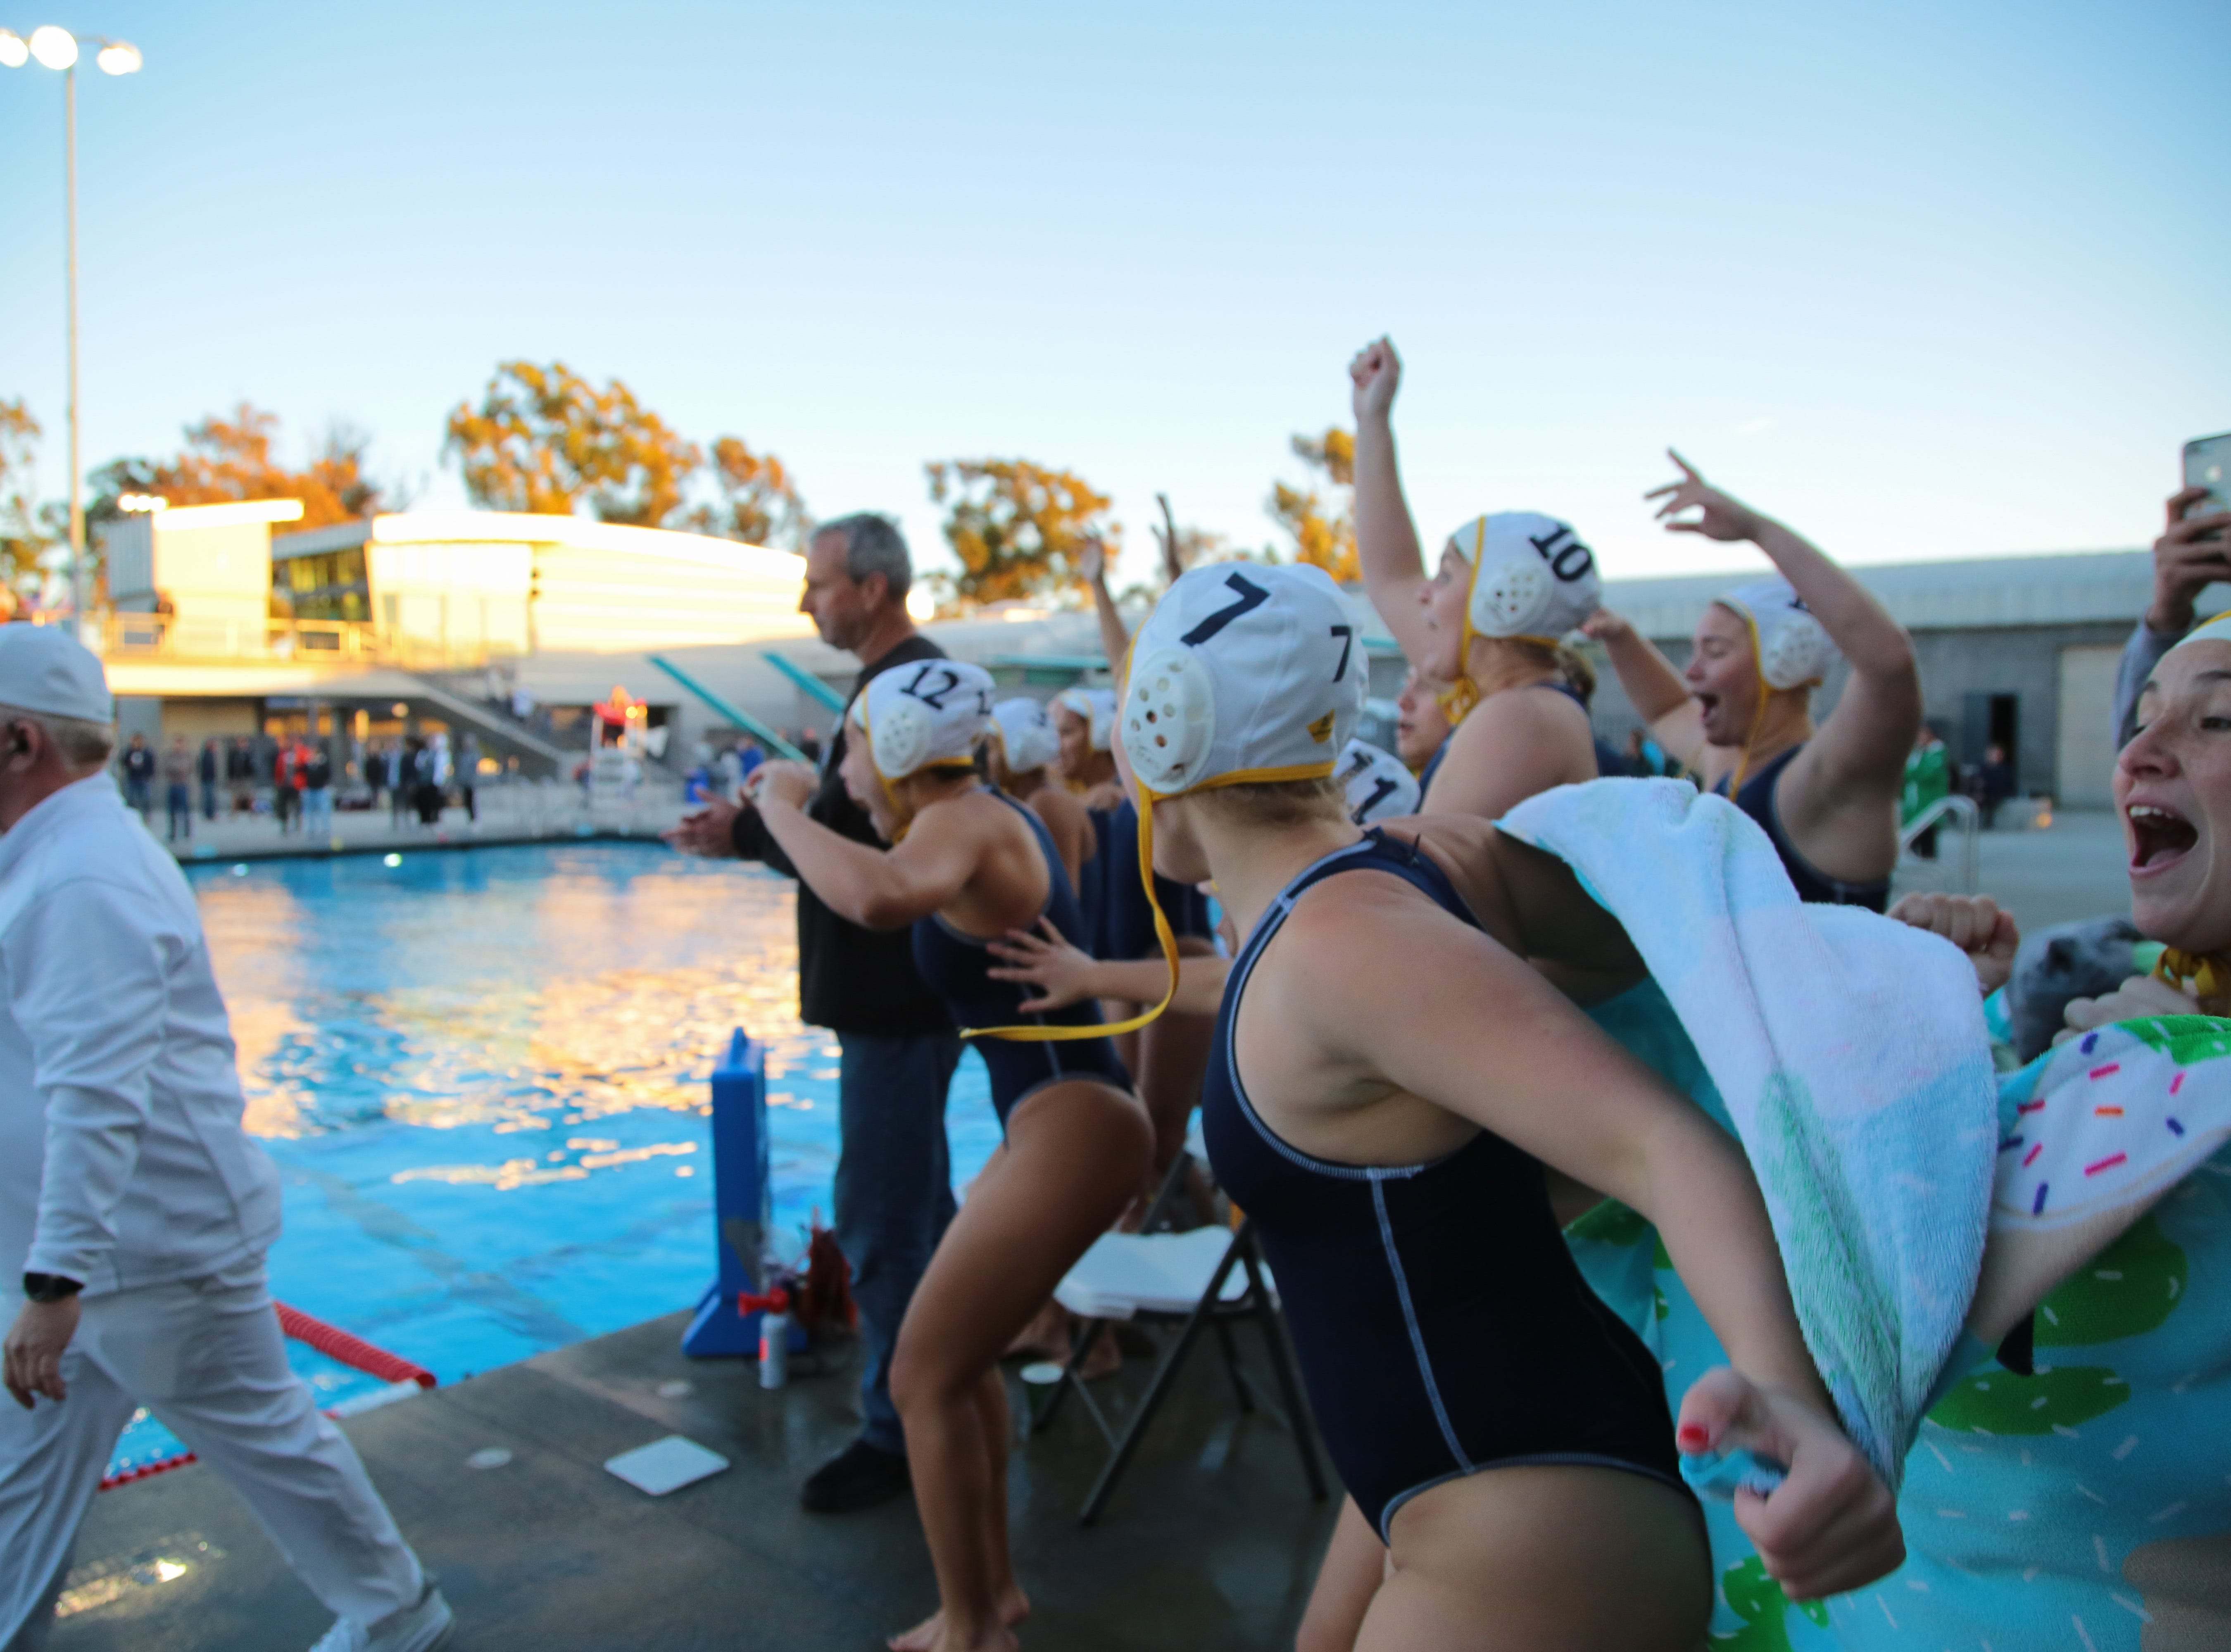 La Quinta water polo wins the CIF Southern Section Division 4 championships, Irvine, Calif., Saturday, February 16, 2019.